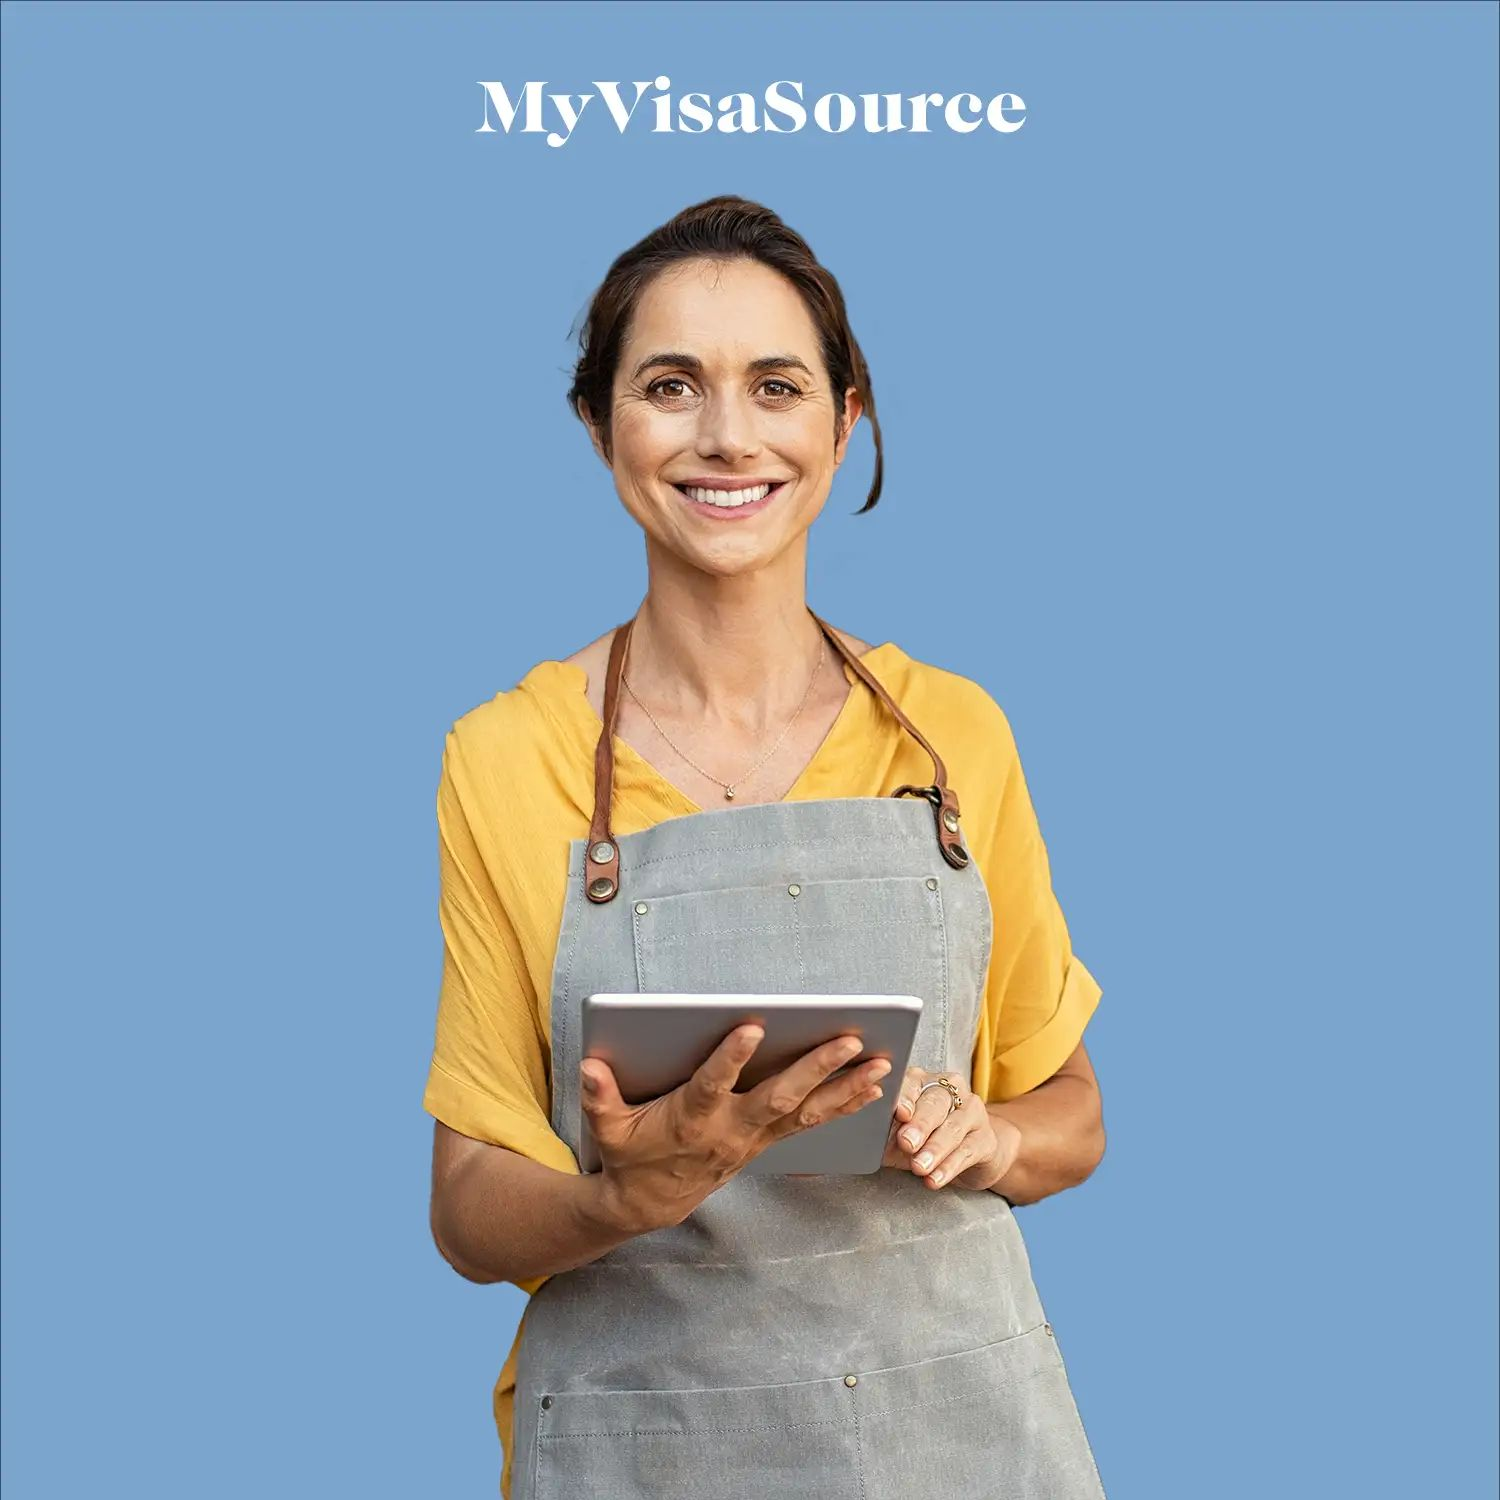 cheerful store clerk woman with a tablet on blue background by my visa source